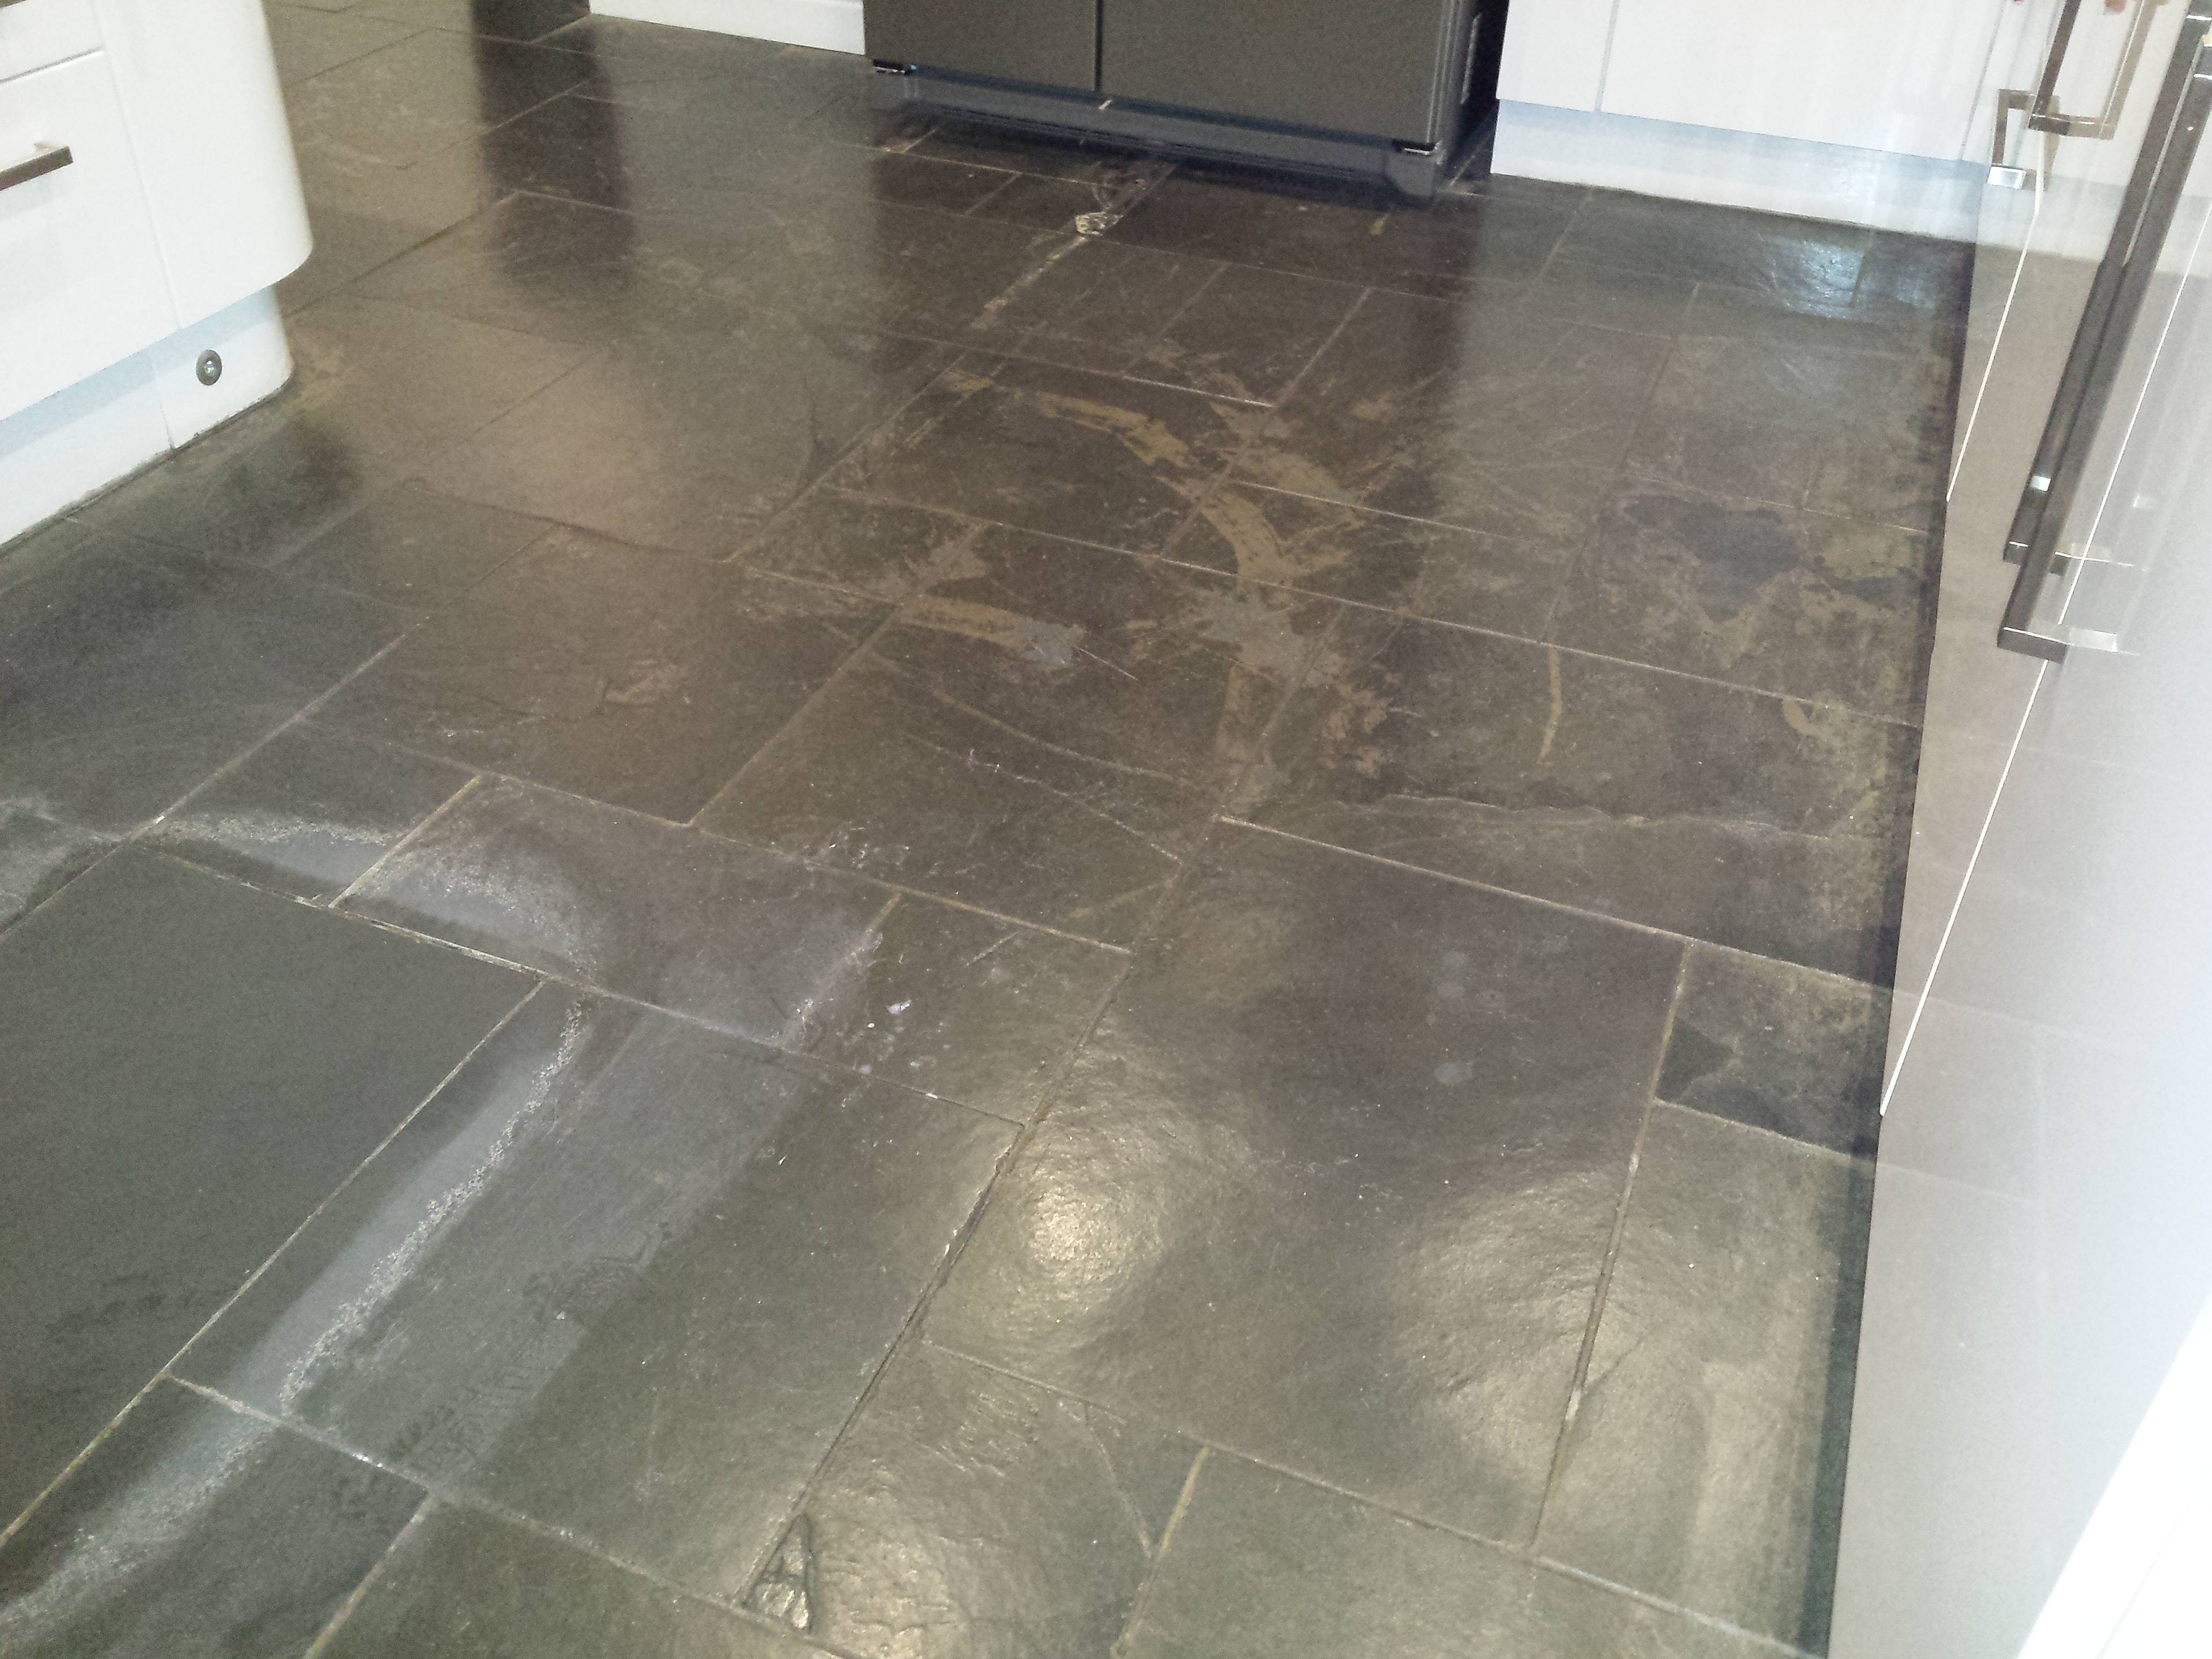 floor tile california bay img tiles maintenance slate removal sealing cleaning area restoration sealer